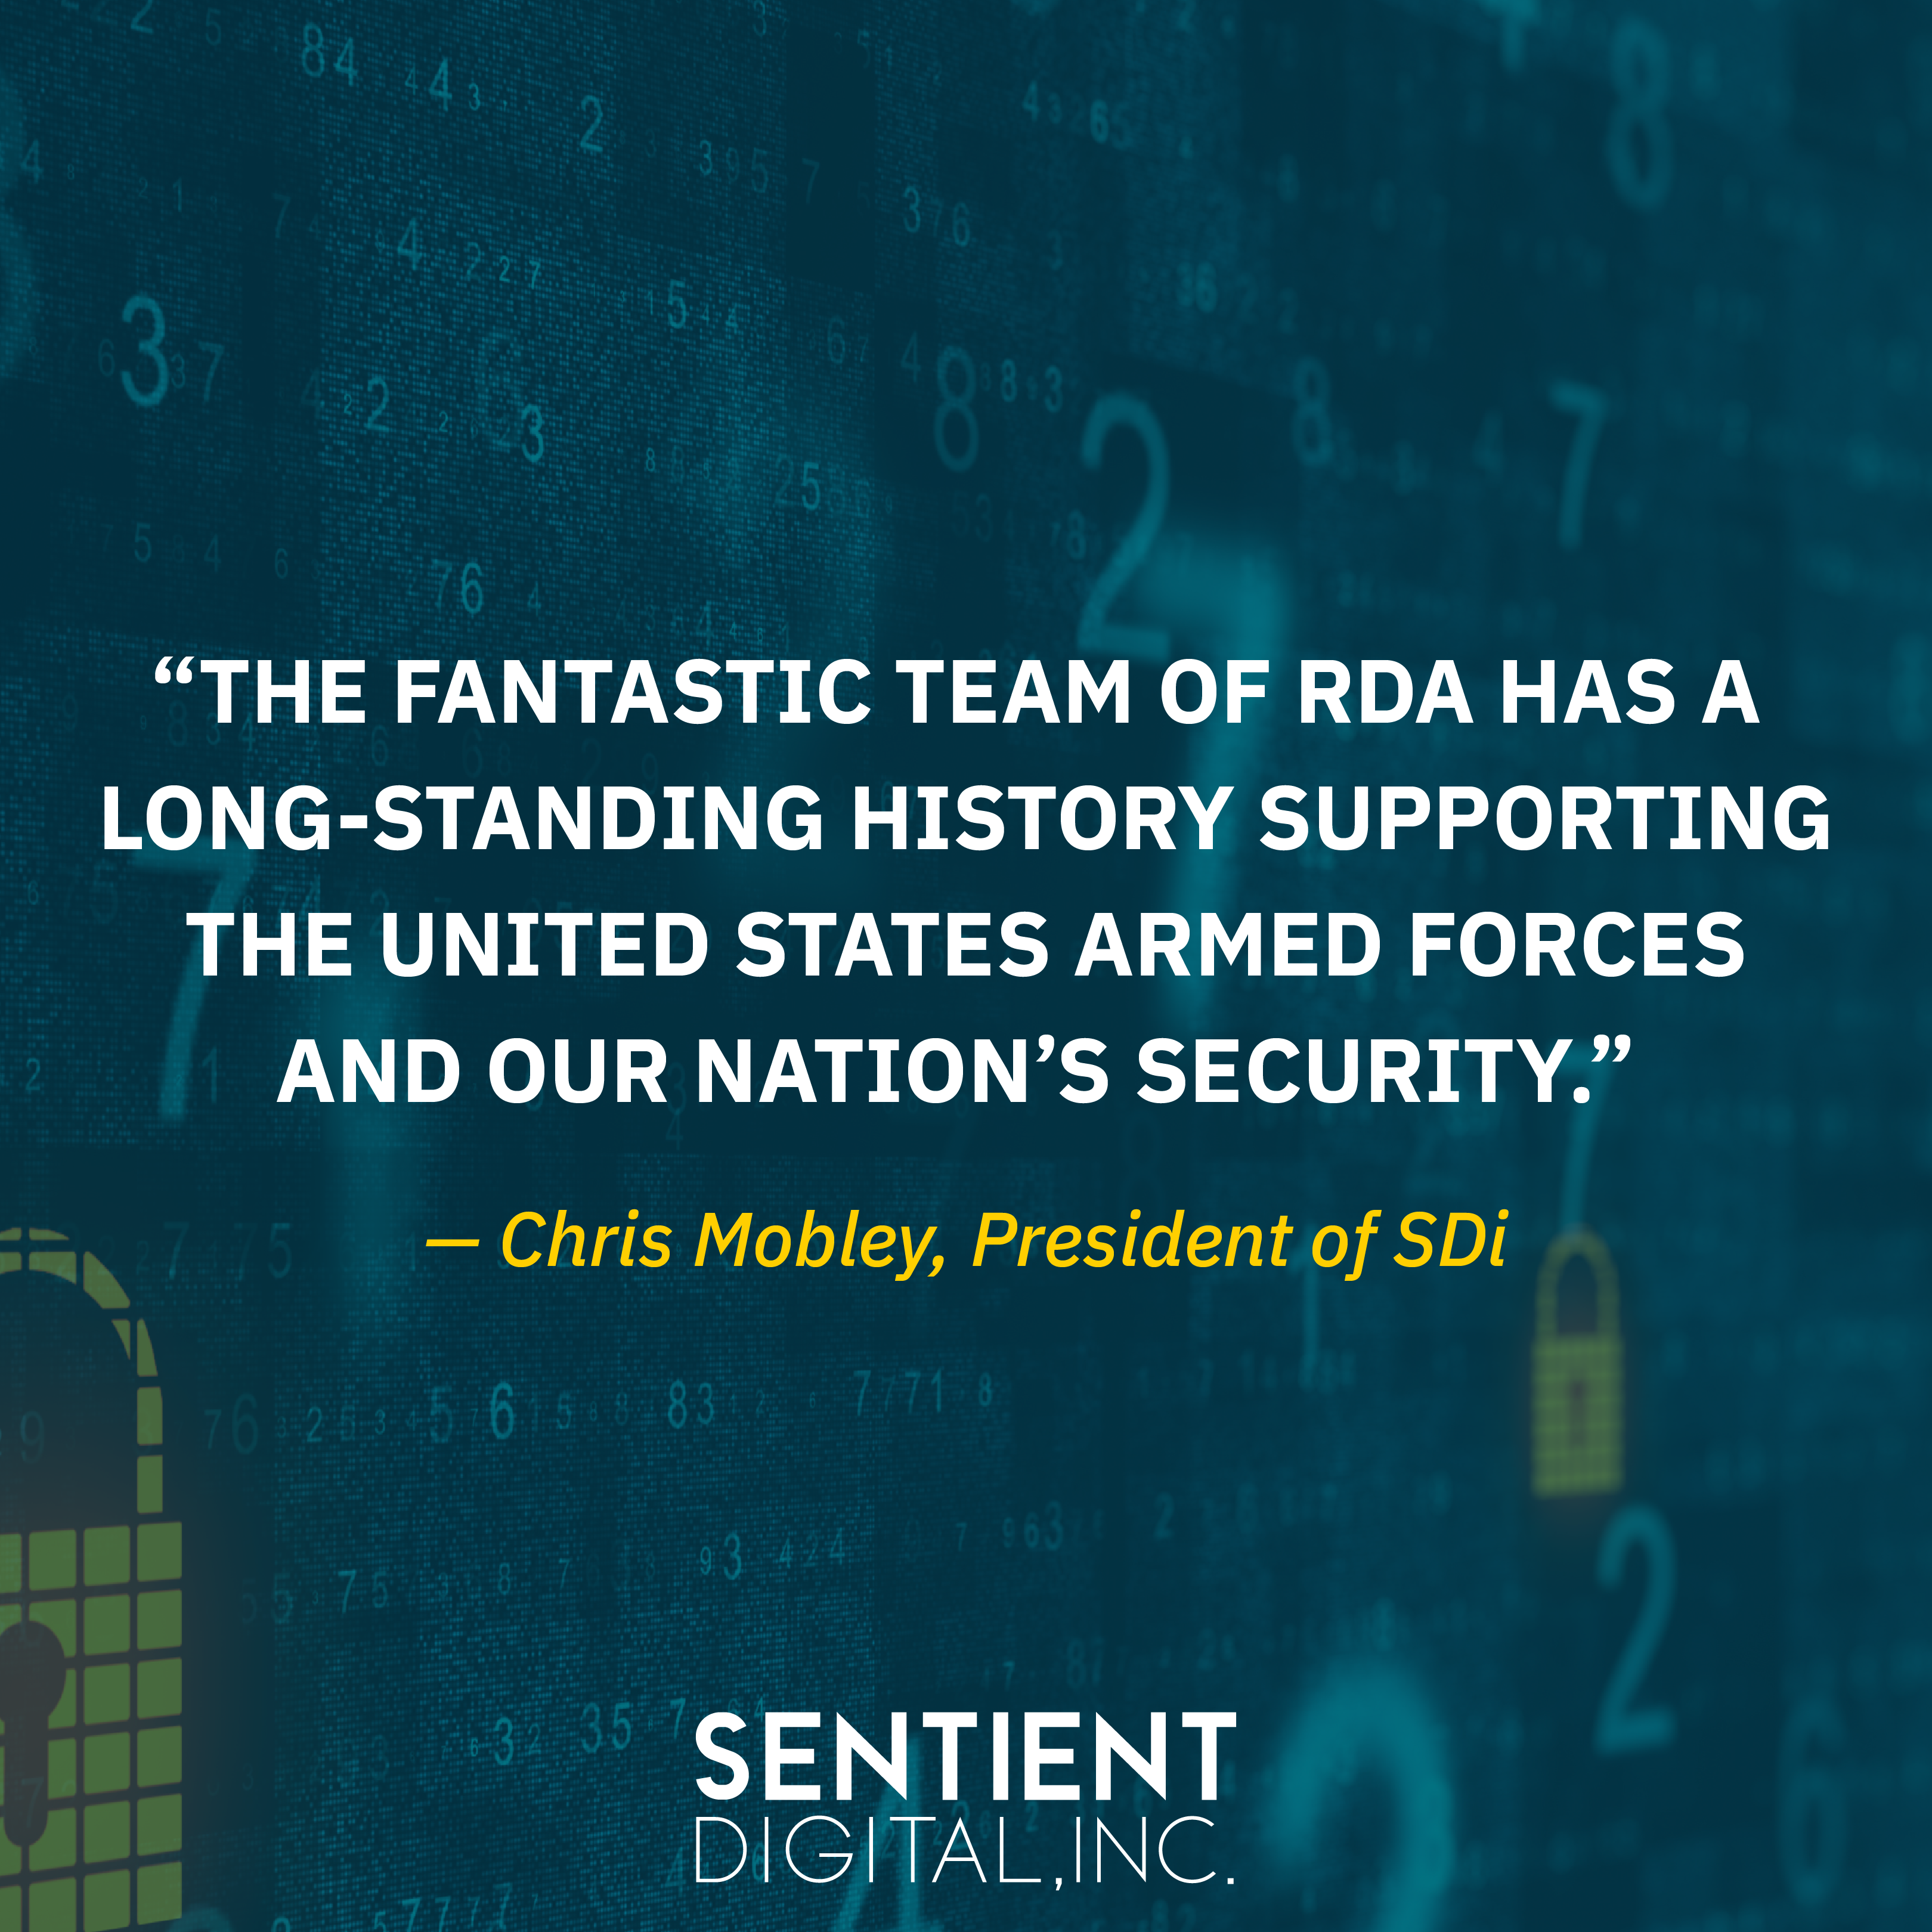 Check out this graphic or keep reading to see what Chris Mobley, SDi's President, had to say about the team at RDA.